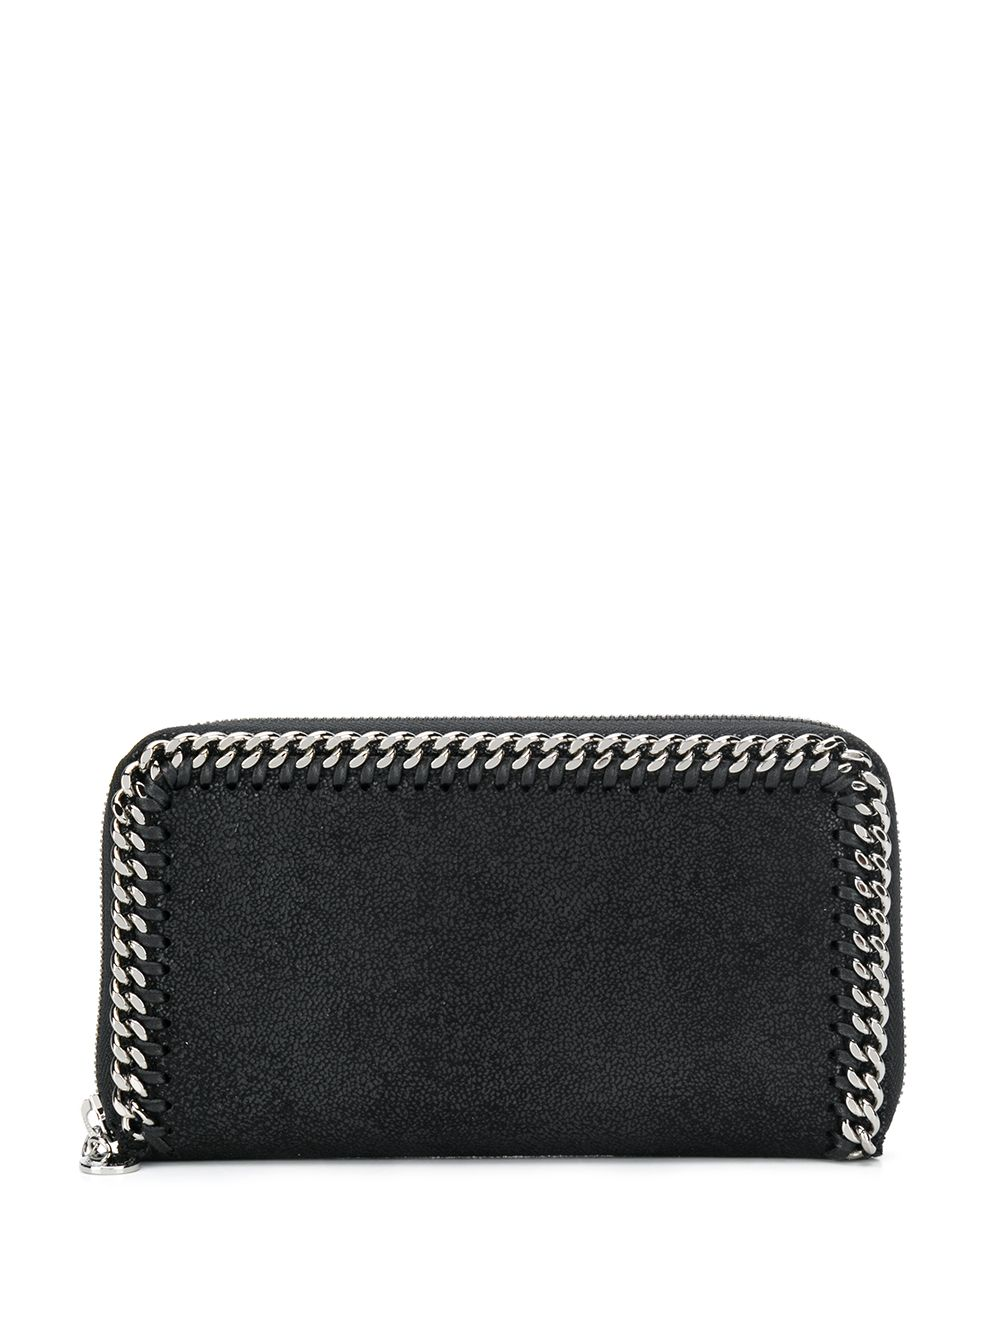 black Falabella continental wallet crafted in faux leather with a signature diamond-cut chain  STELLA MC CARTNEY      434750-W91321000